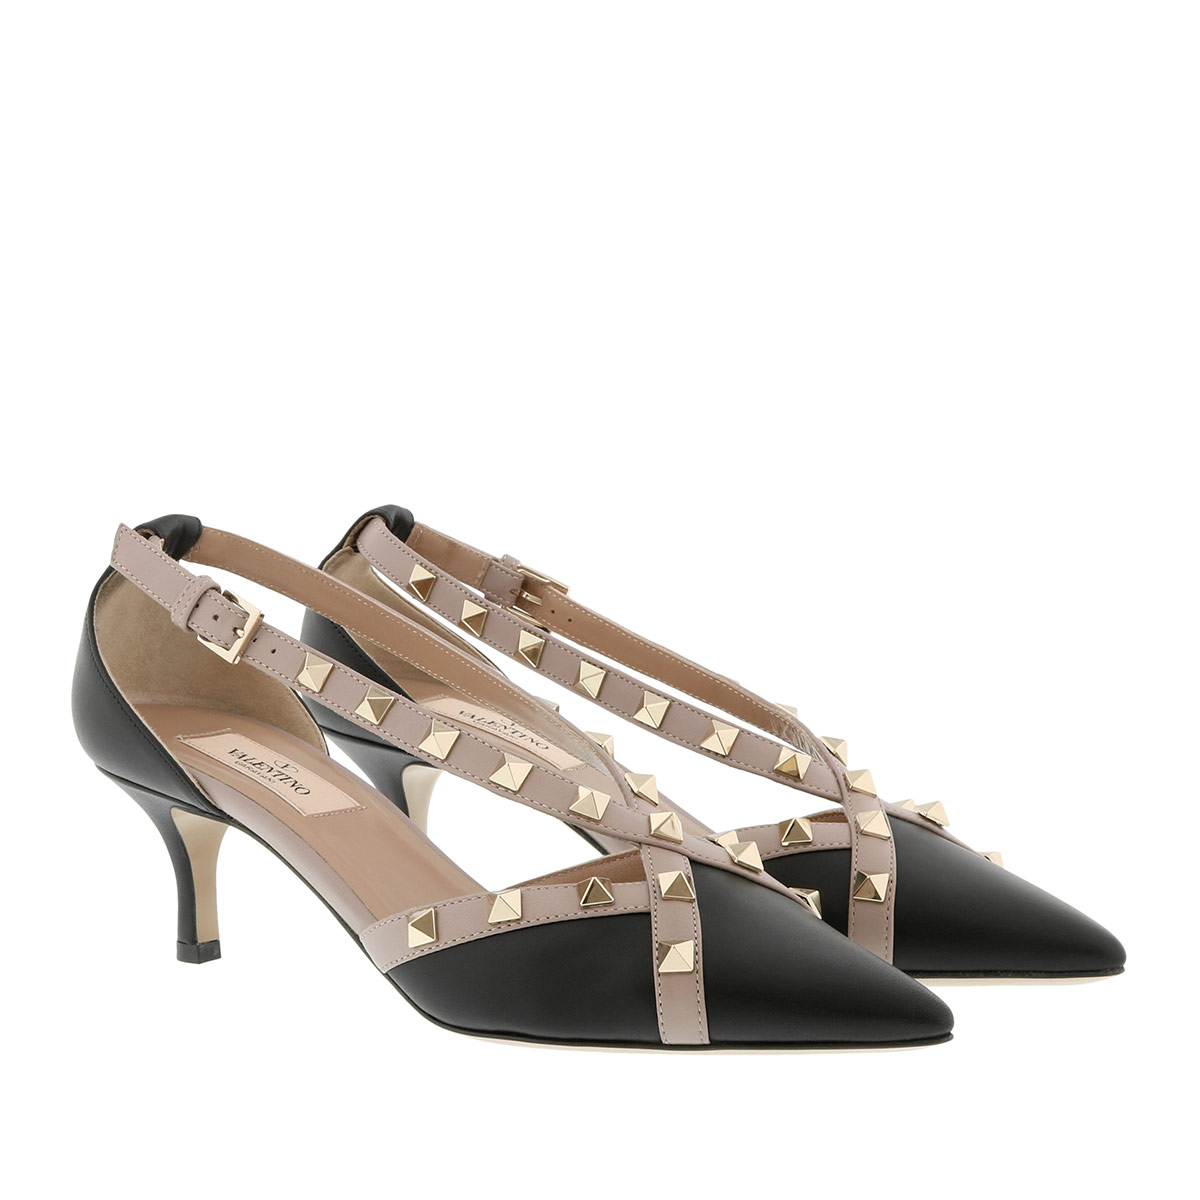 Valentino Pumps - Rockstud Pumps 55 Leather Black - in schwarz - für Damen